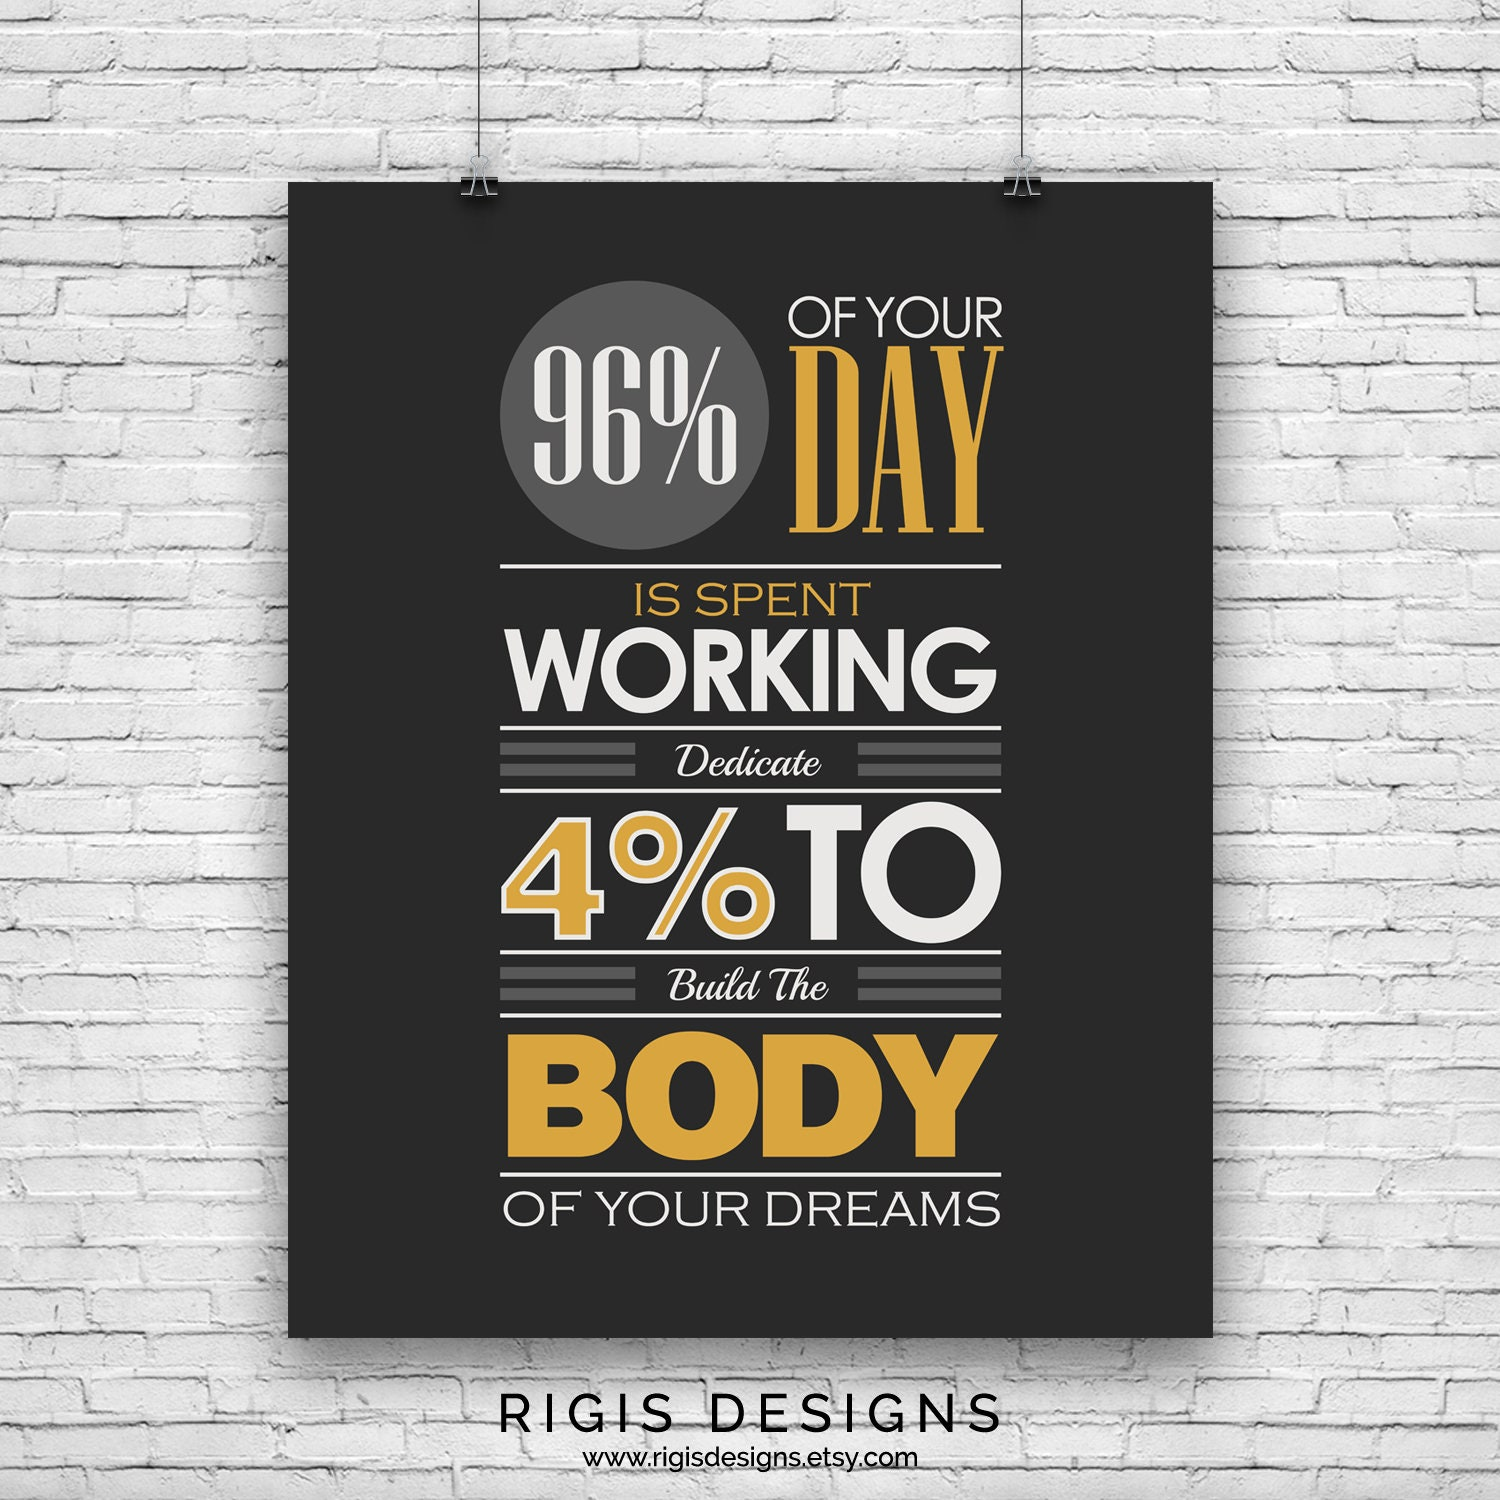 Build the Body of Your Dreams, Gym Motivation Poster